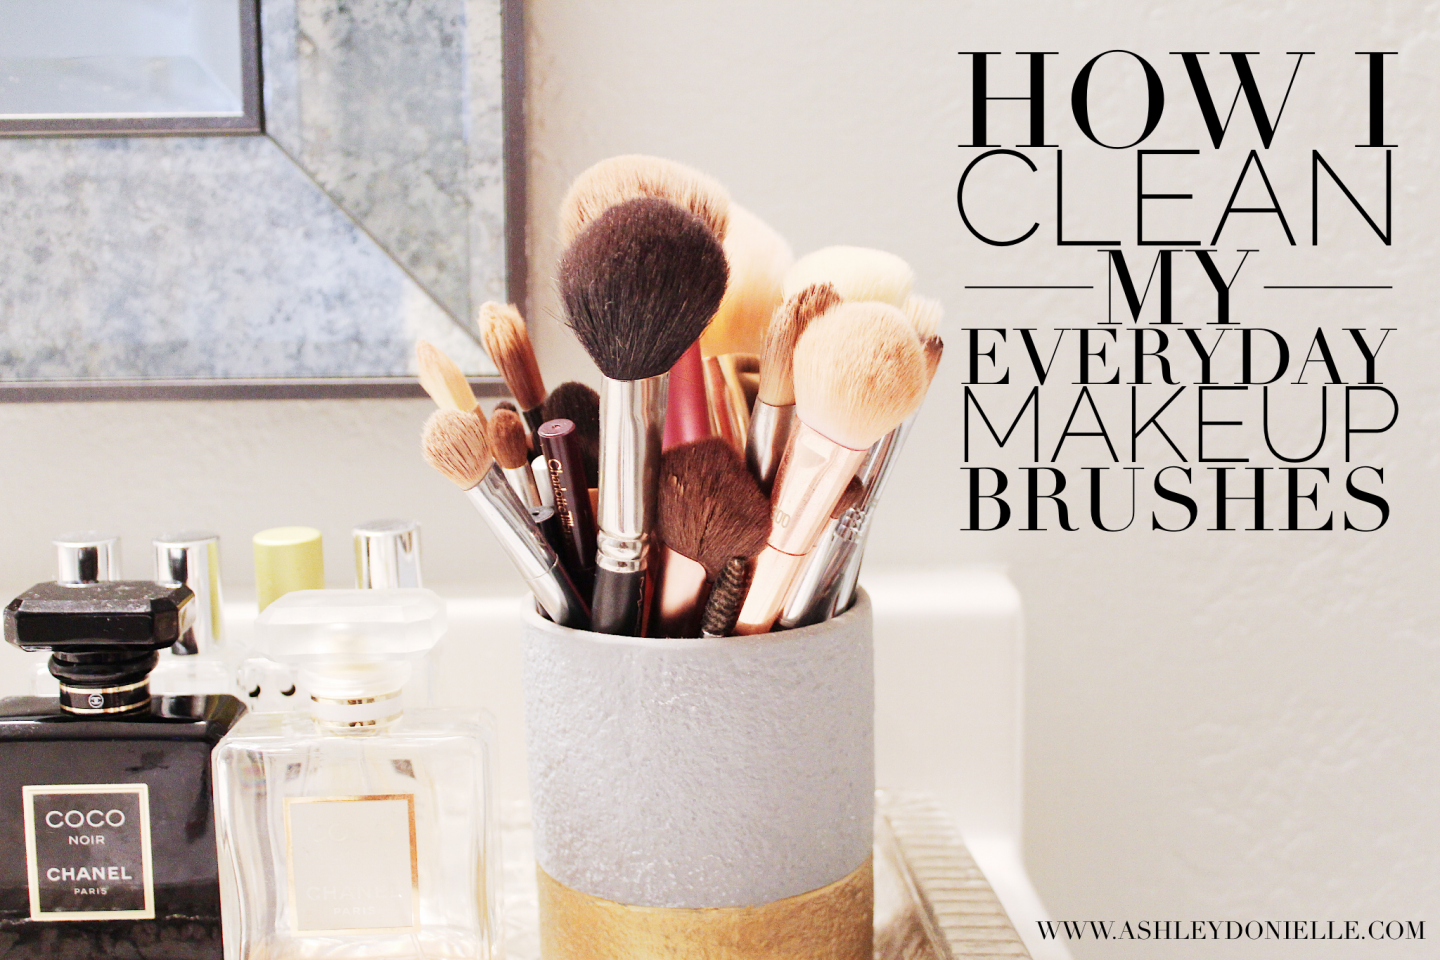 My Everyday Makeup Brushes & How I Clean Them